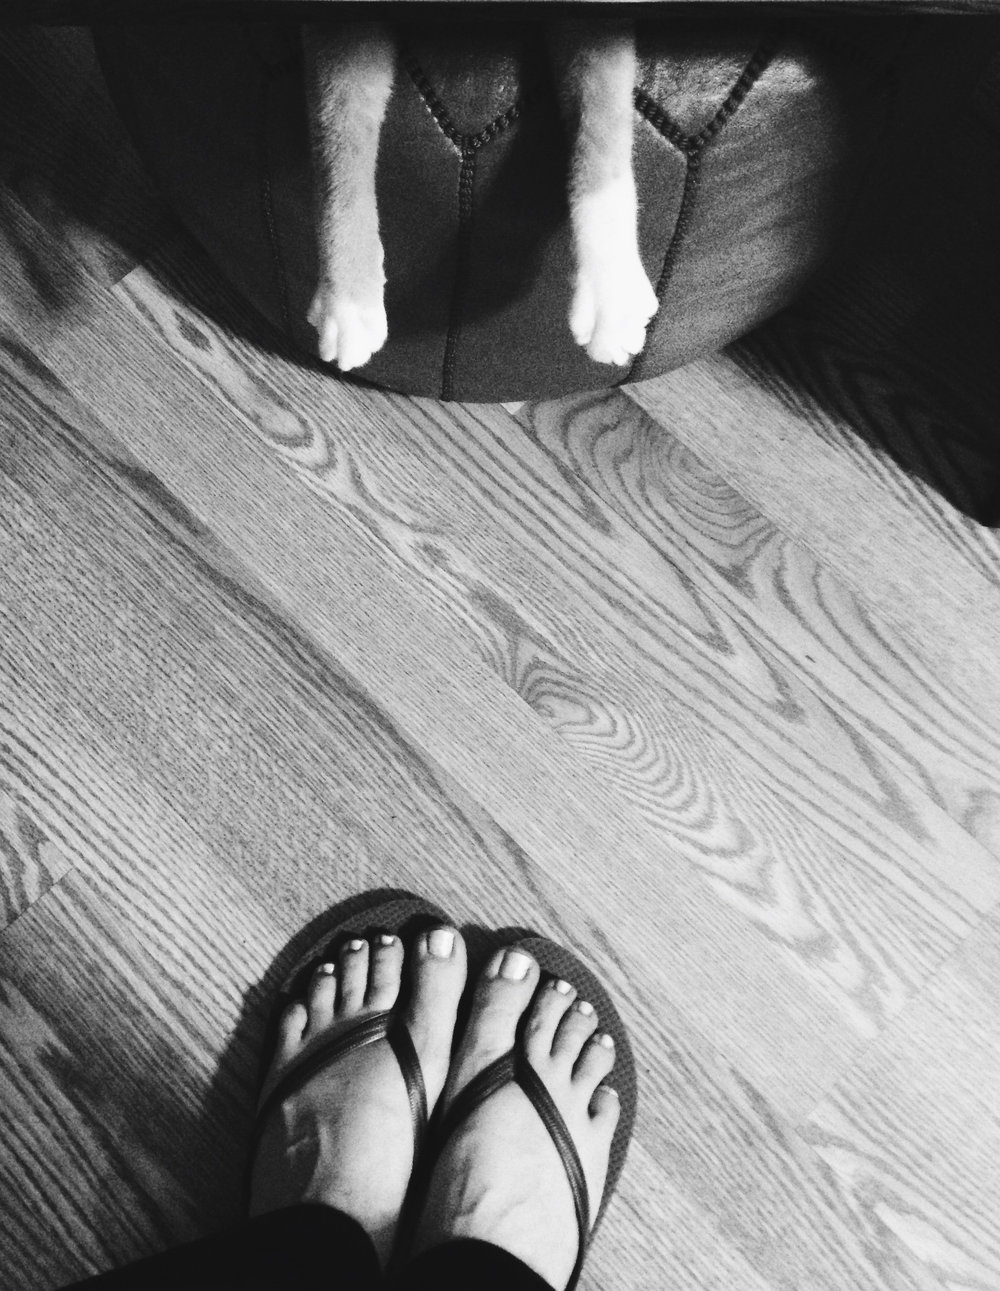 Day 53: One foot, two feet. Fuzzy fur feet. - Dr. Seuss